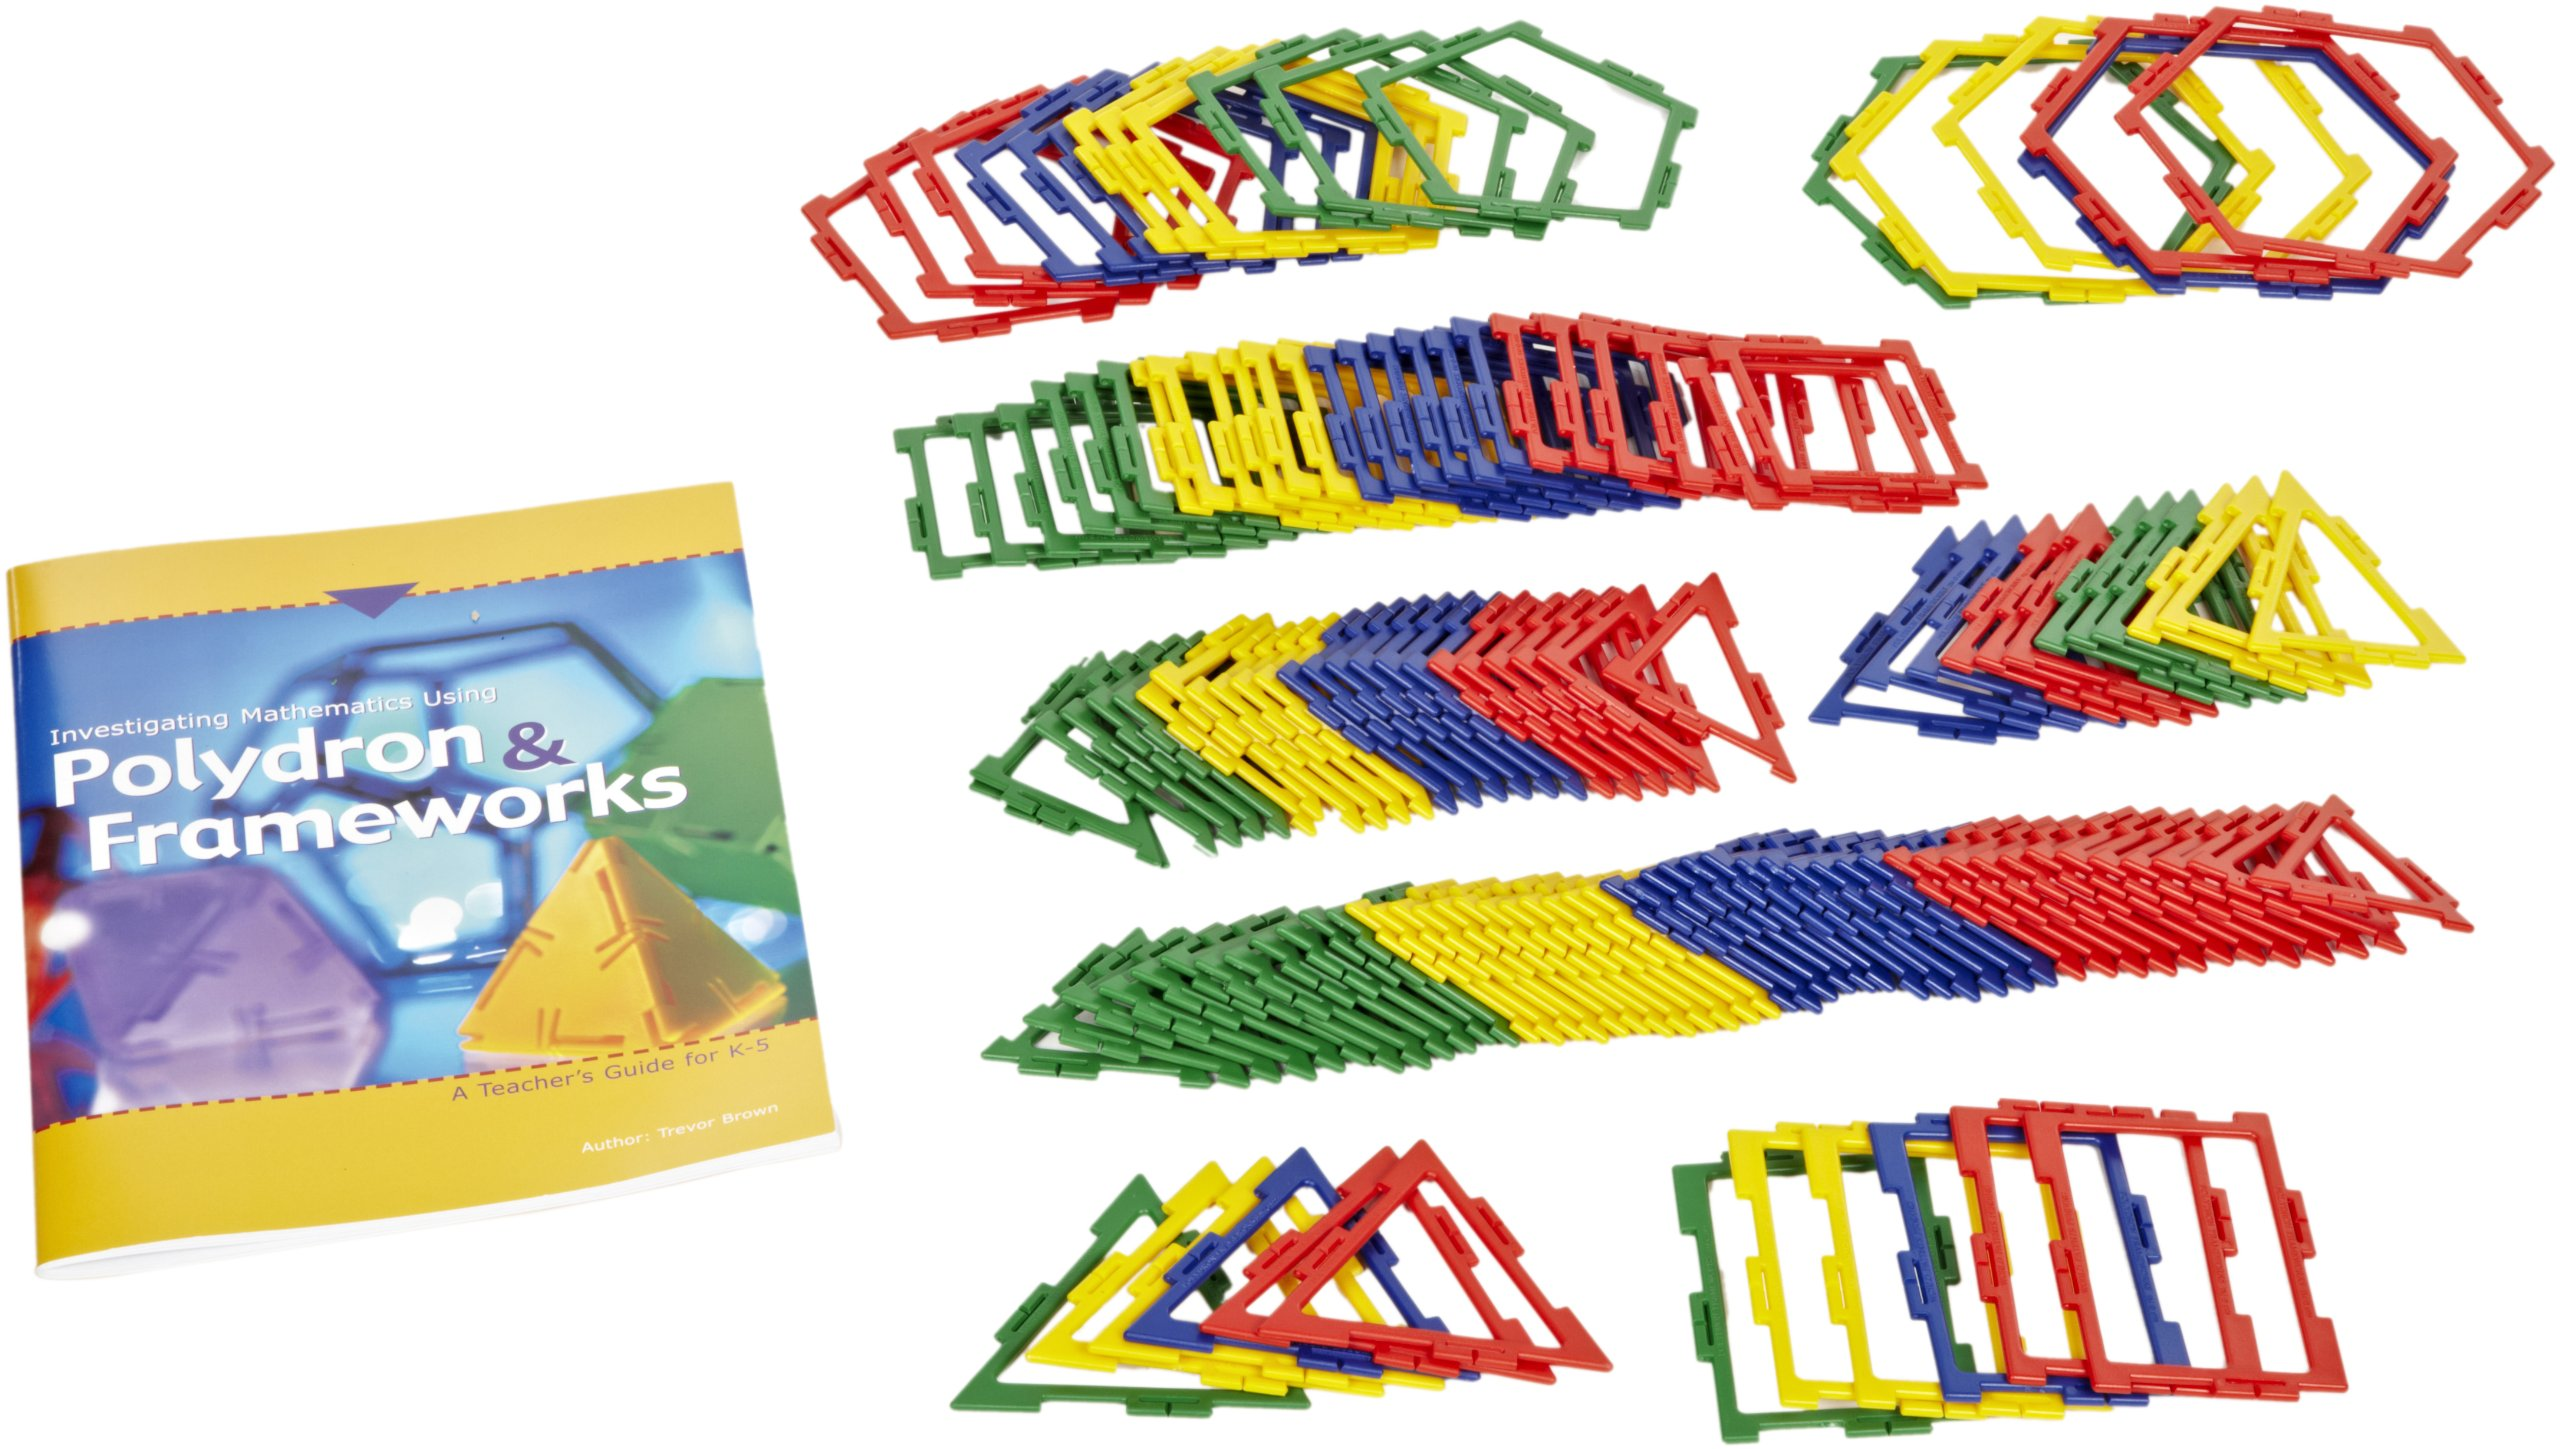 hand2mind Polydron Frameworks Classroom (Set of 690 Pieces) by hand2mind